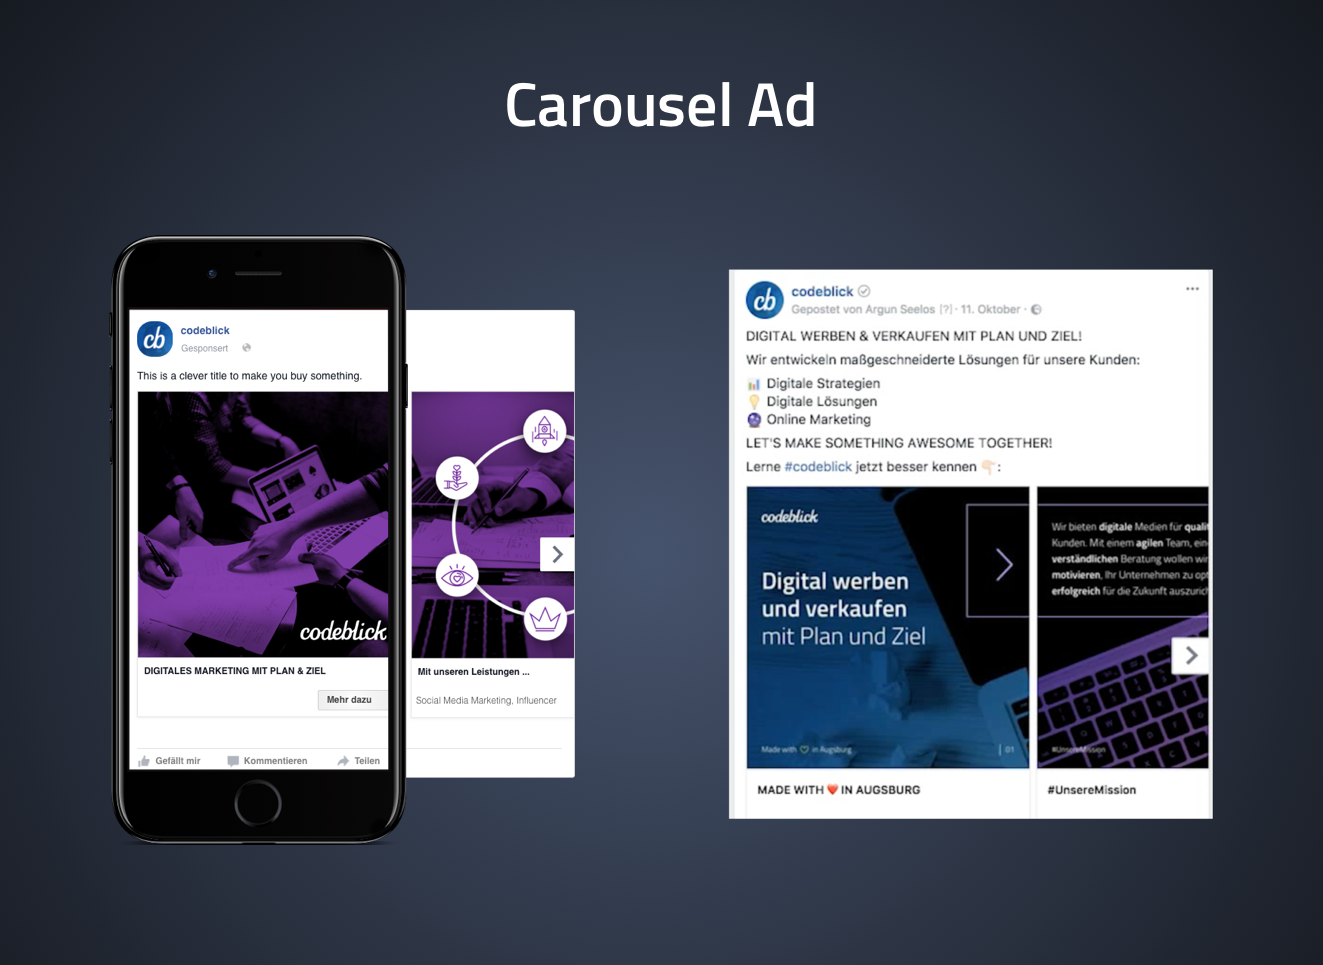 2017-12-04-Blogpost-All-about-Social-Ads-Teil-2-CarouselAd